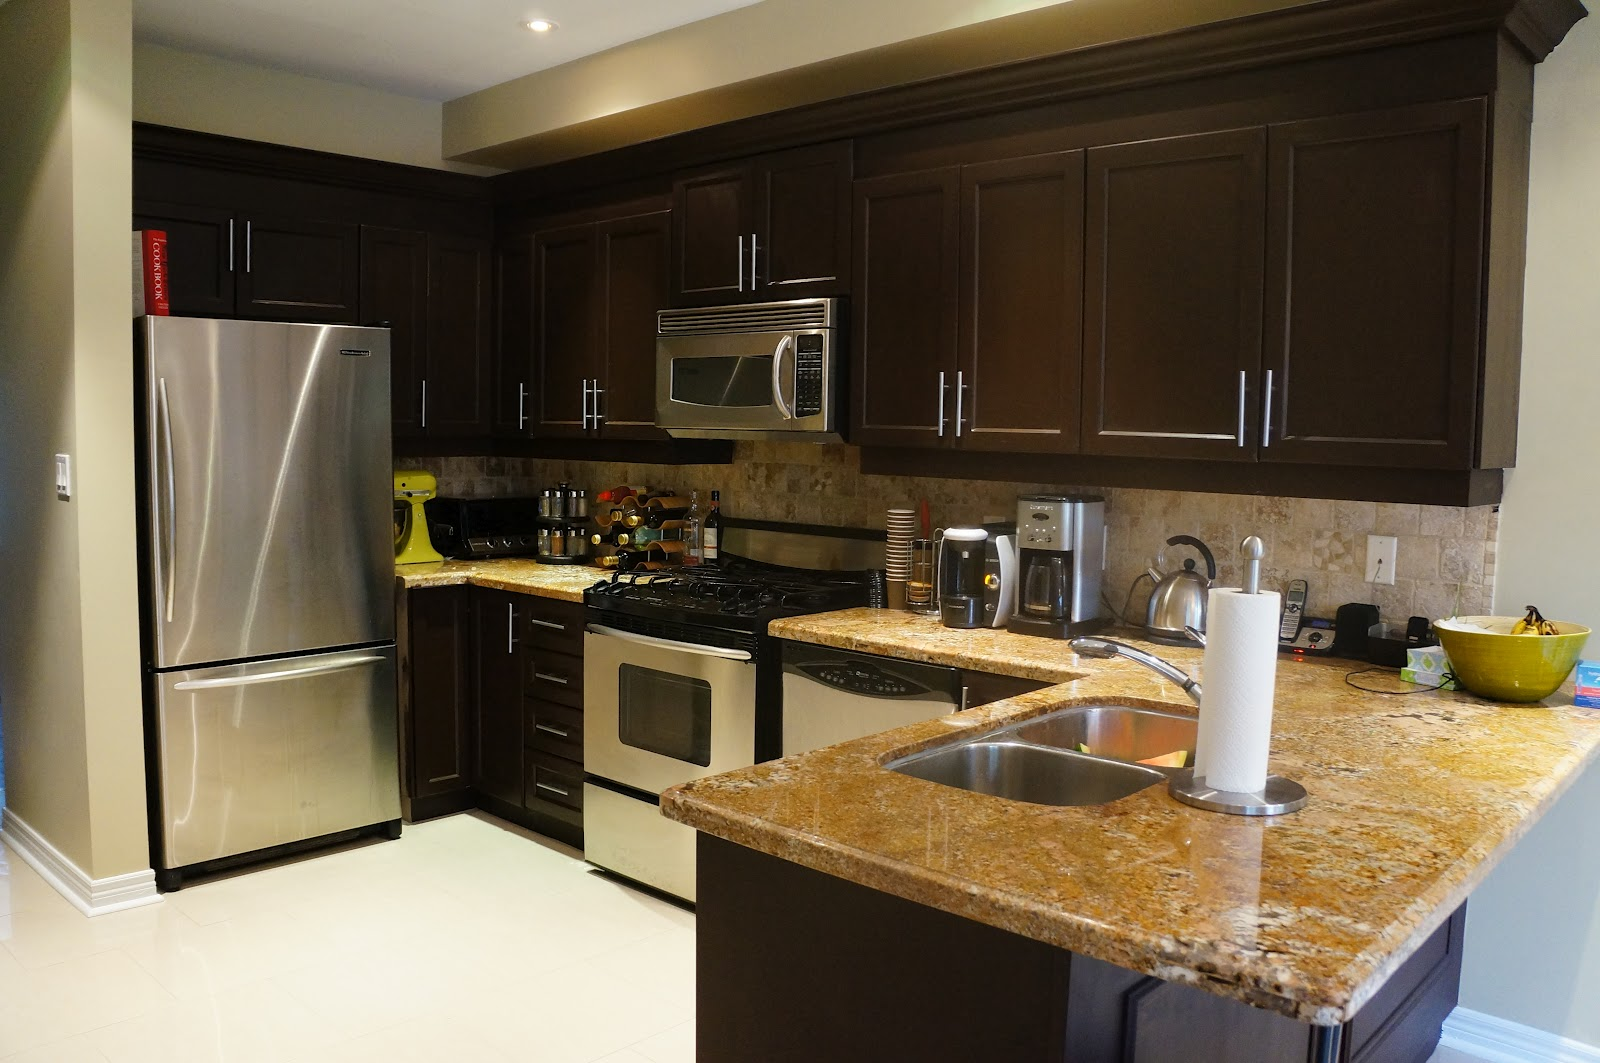 Kitchen Transformation Before And After: All Things Created: Rust-Oleum